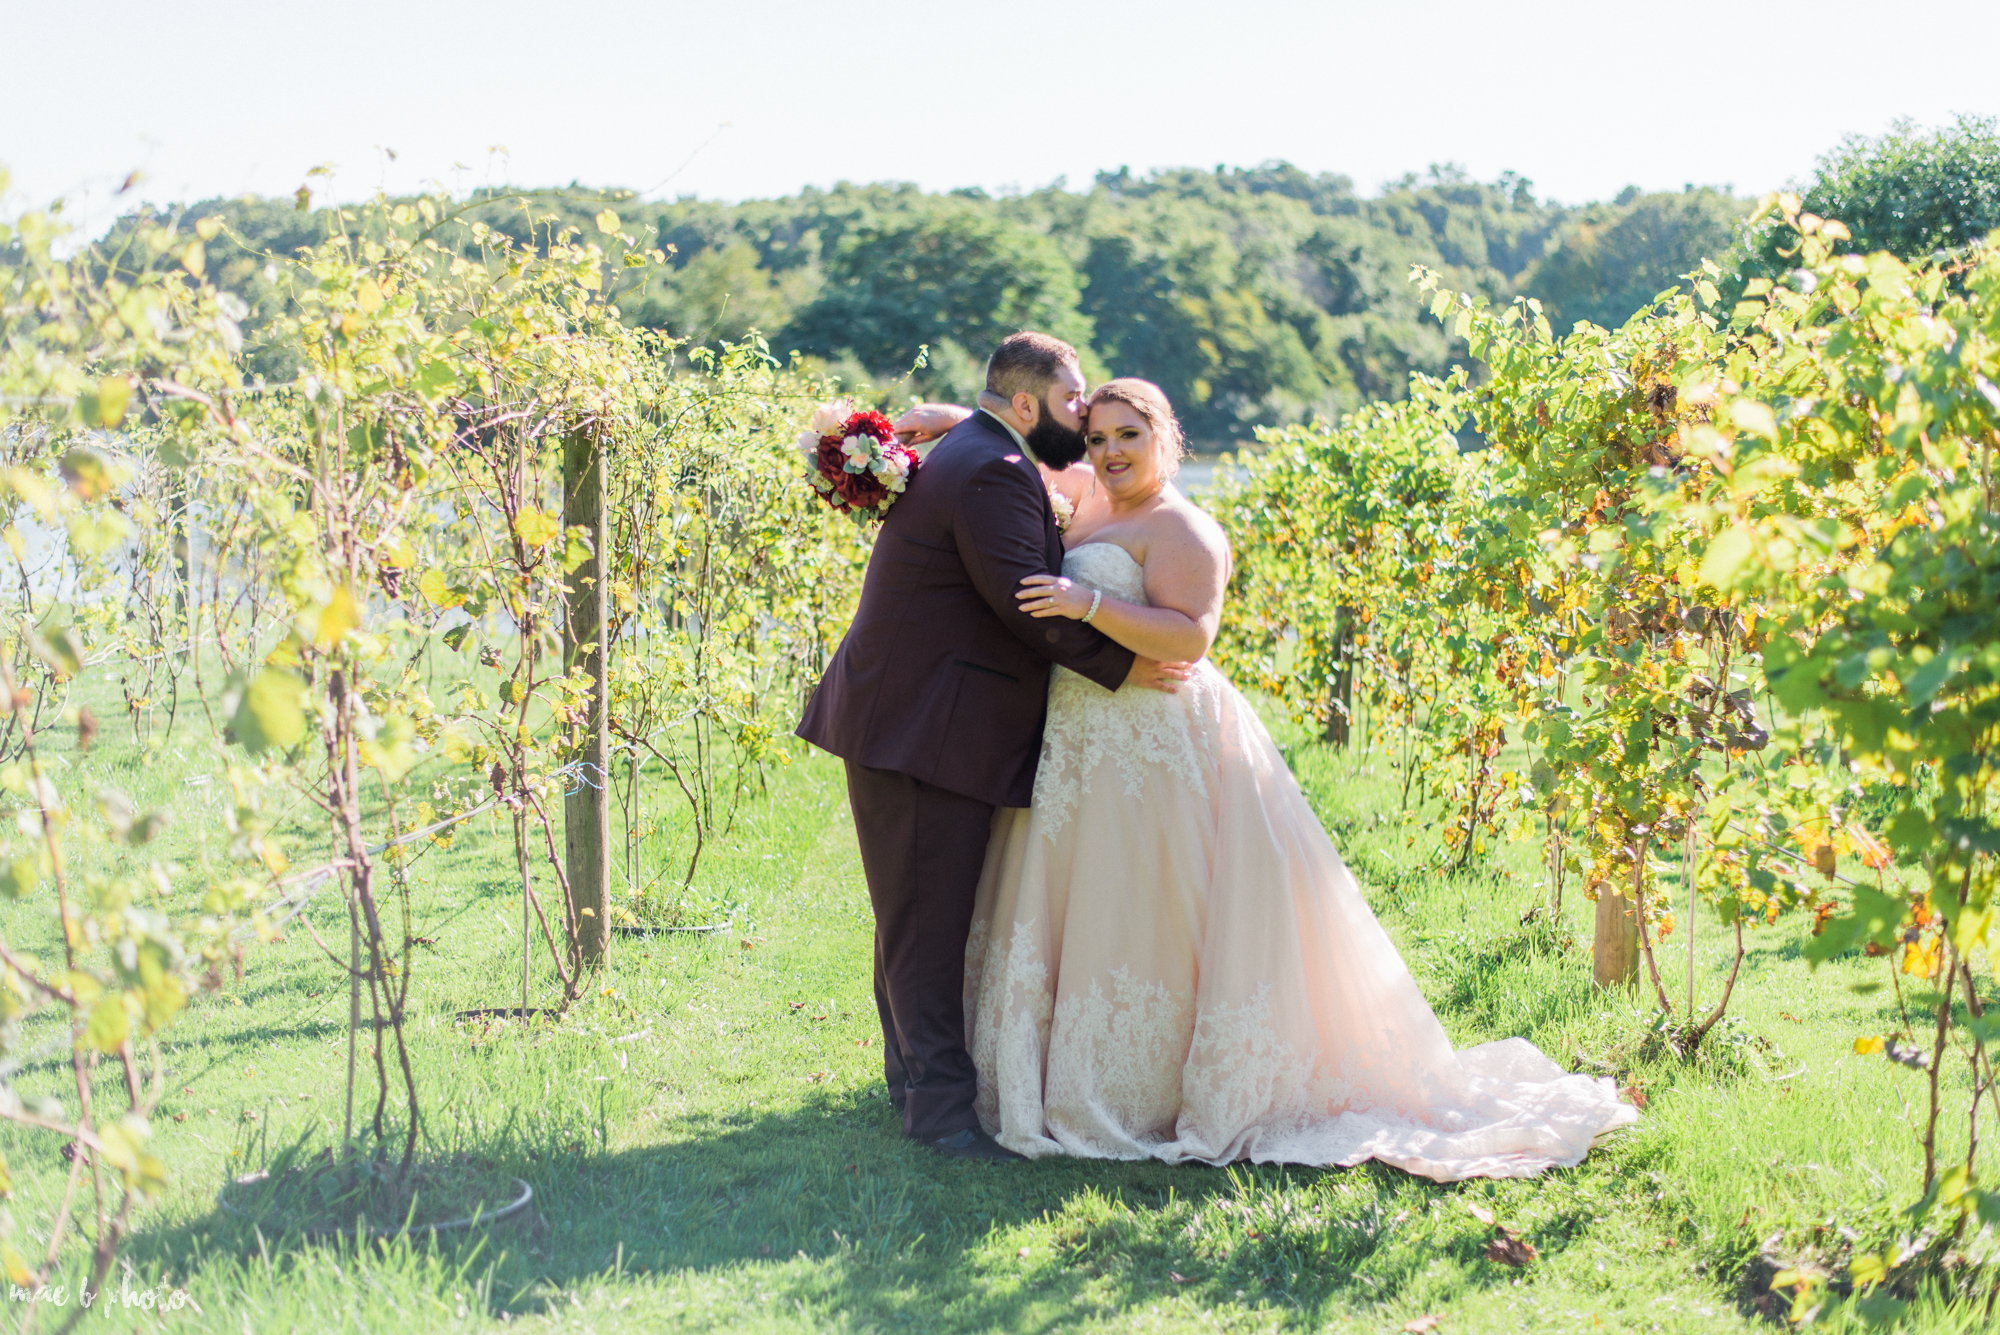 Amber & Kyle's Rustic Barn Wedding at SNPJ in Enon Valley, PA by Mae B Photo-68.jpg